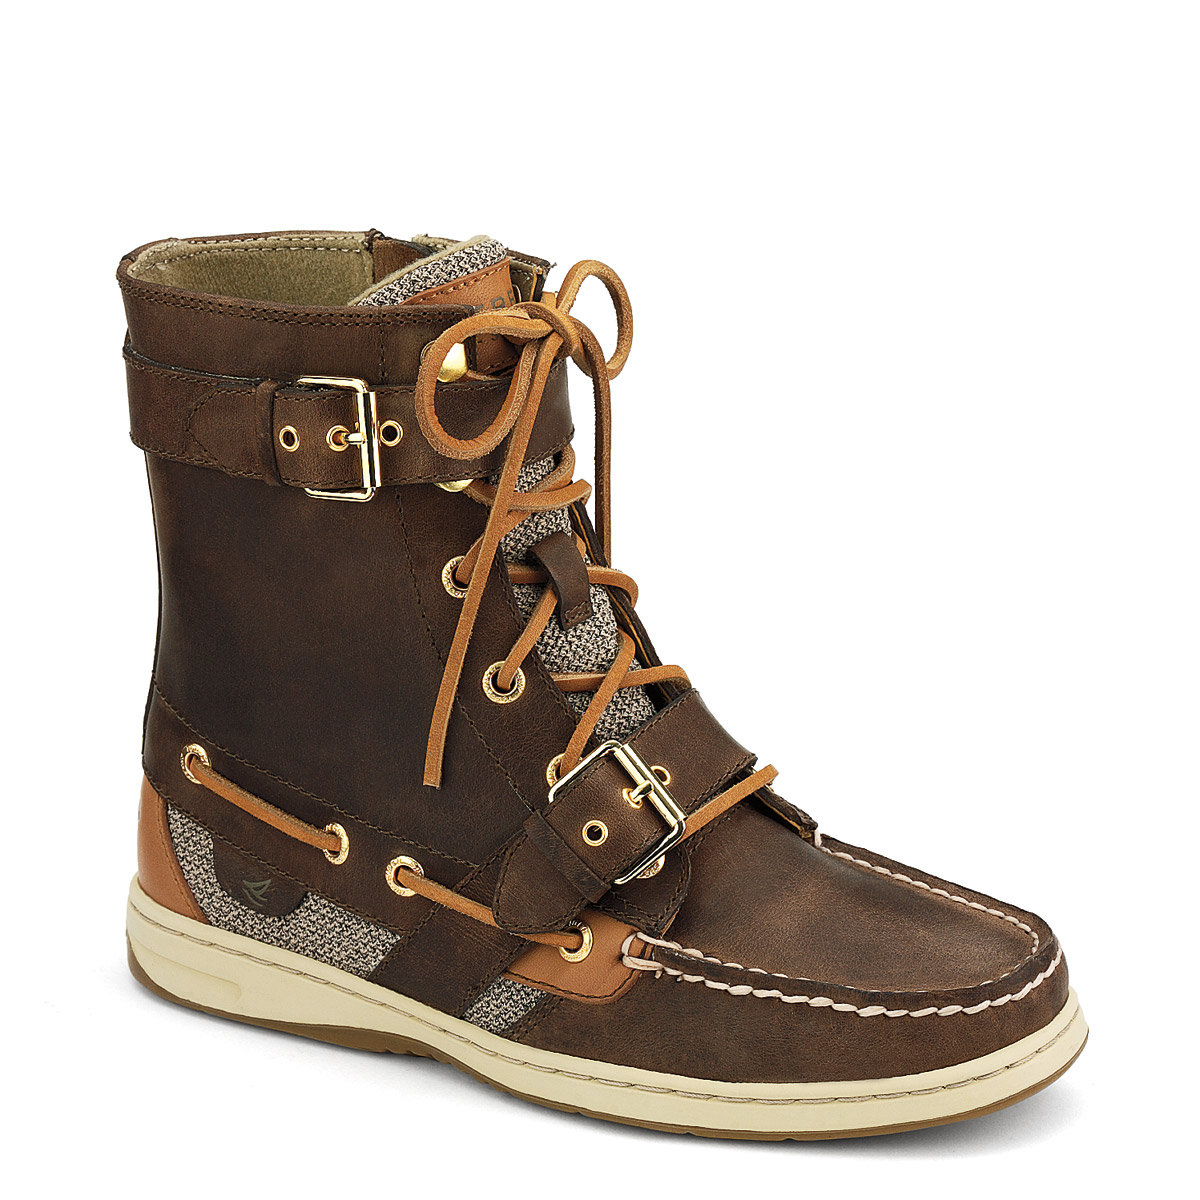 sperry top sider s huntley boot from sperry top sider